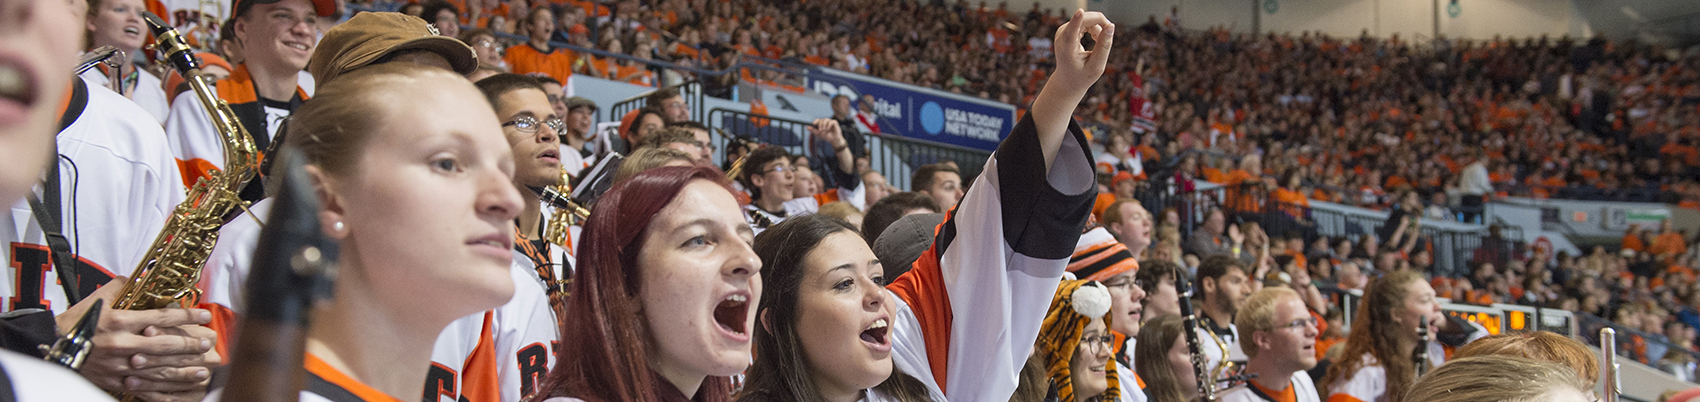 Students at RIT hockey game cheering